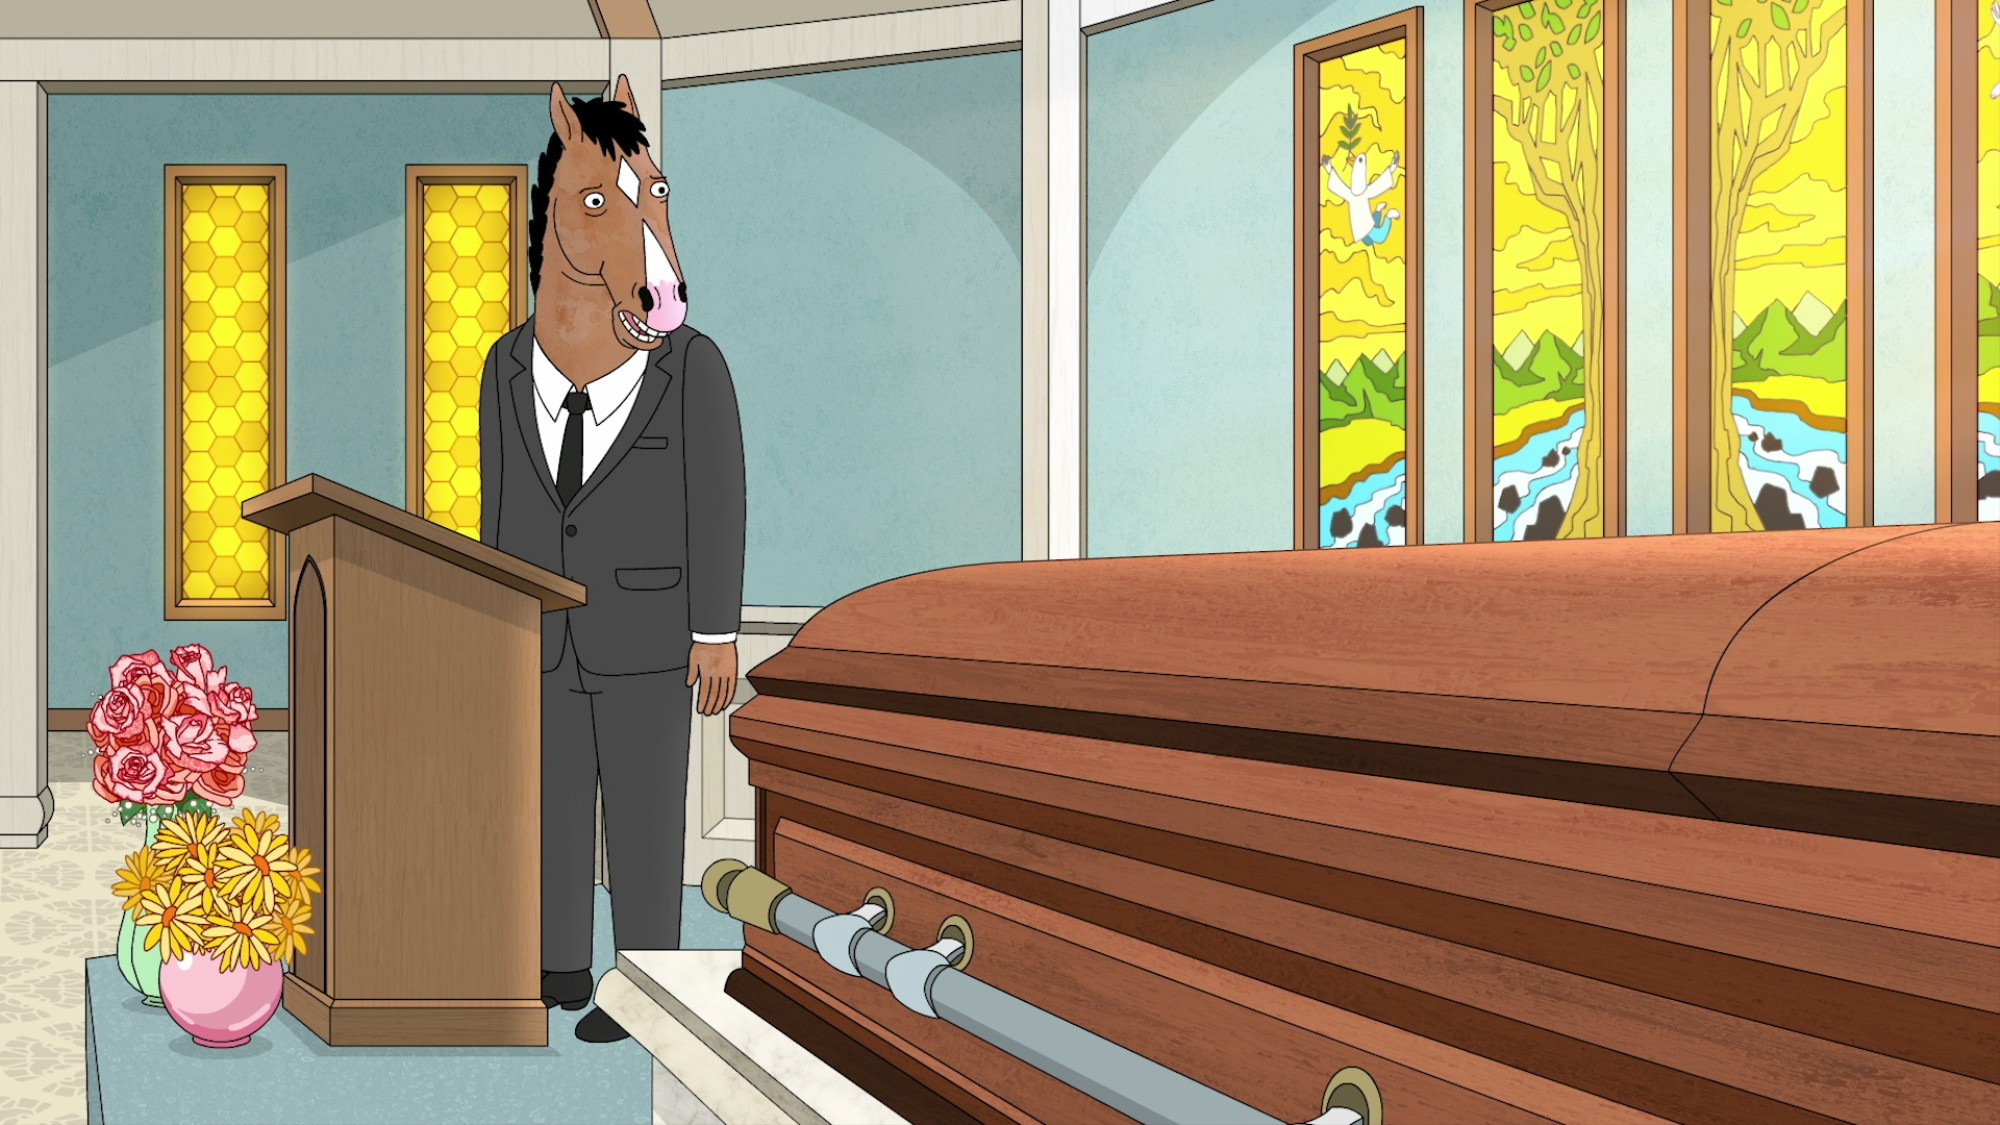 BoJack Horseman' Helped Me Grapple with the Death of an